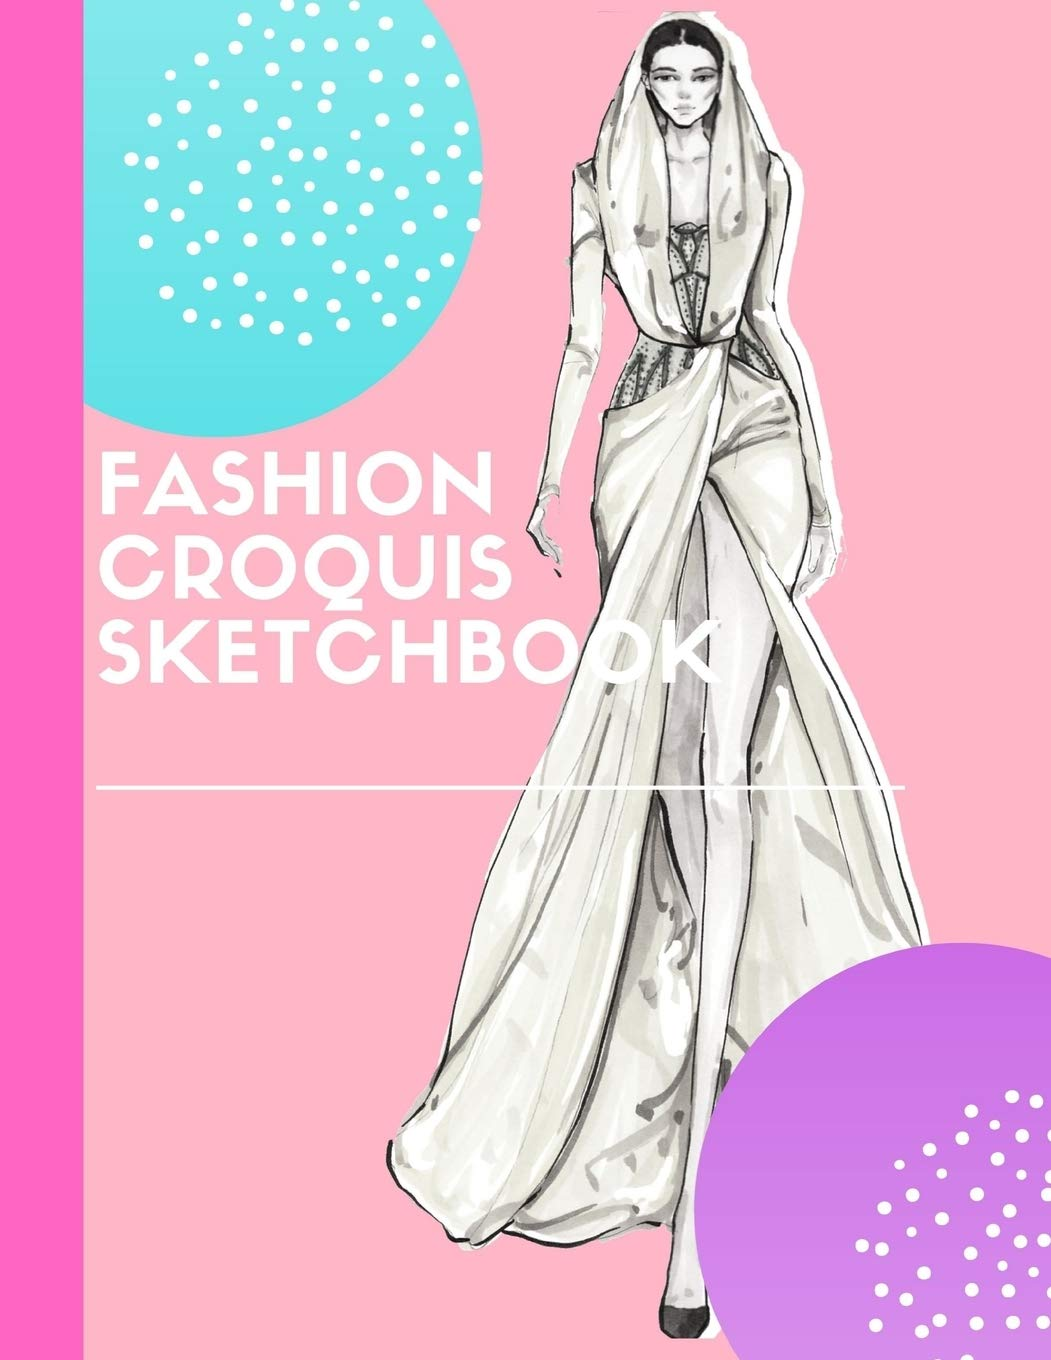 Buy Fashion Croquis Sketchbook A Cute Beautiful Model Pink Theme Professional Female Figure Body Basic Illustration Templates Sketchpad With Lightly High Fashion Designs And Create Portfolio Book Online At Low Prices